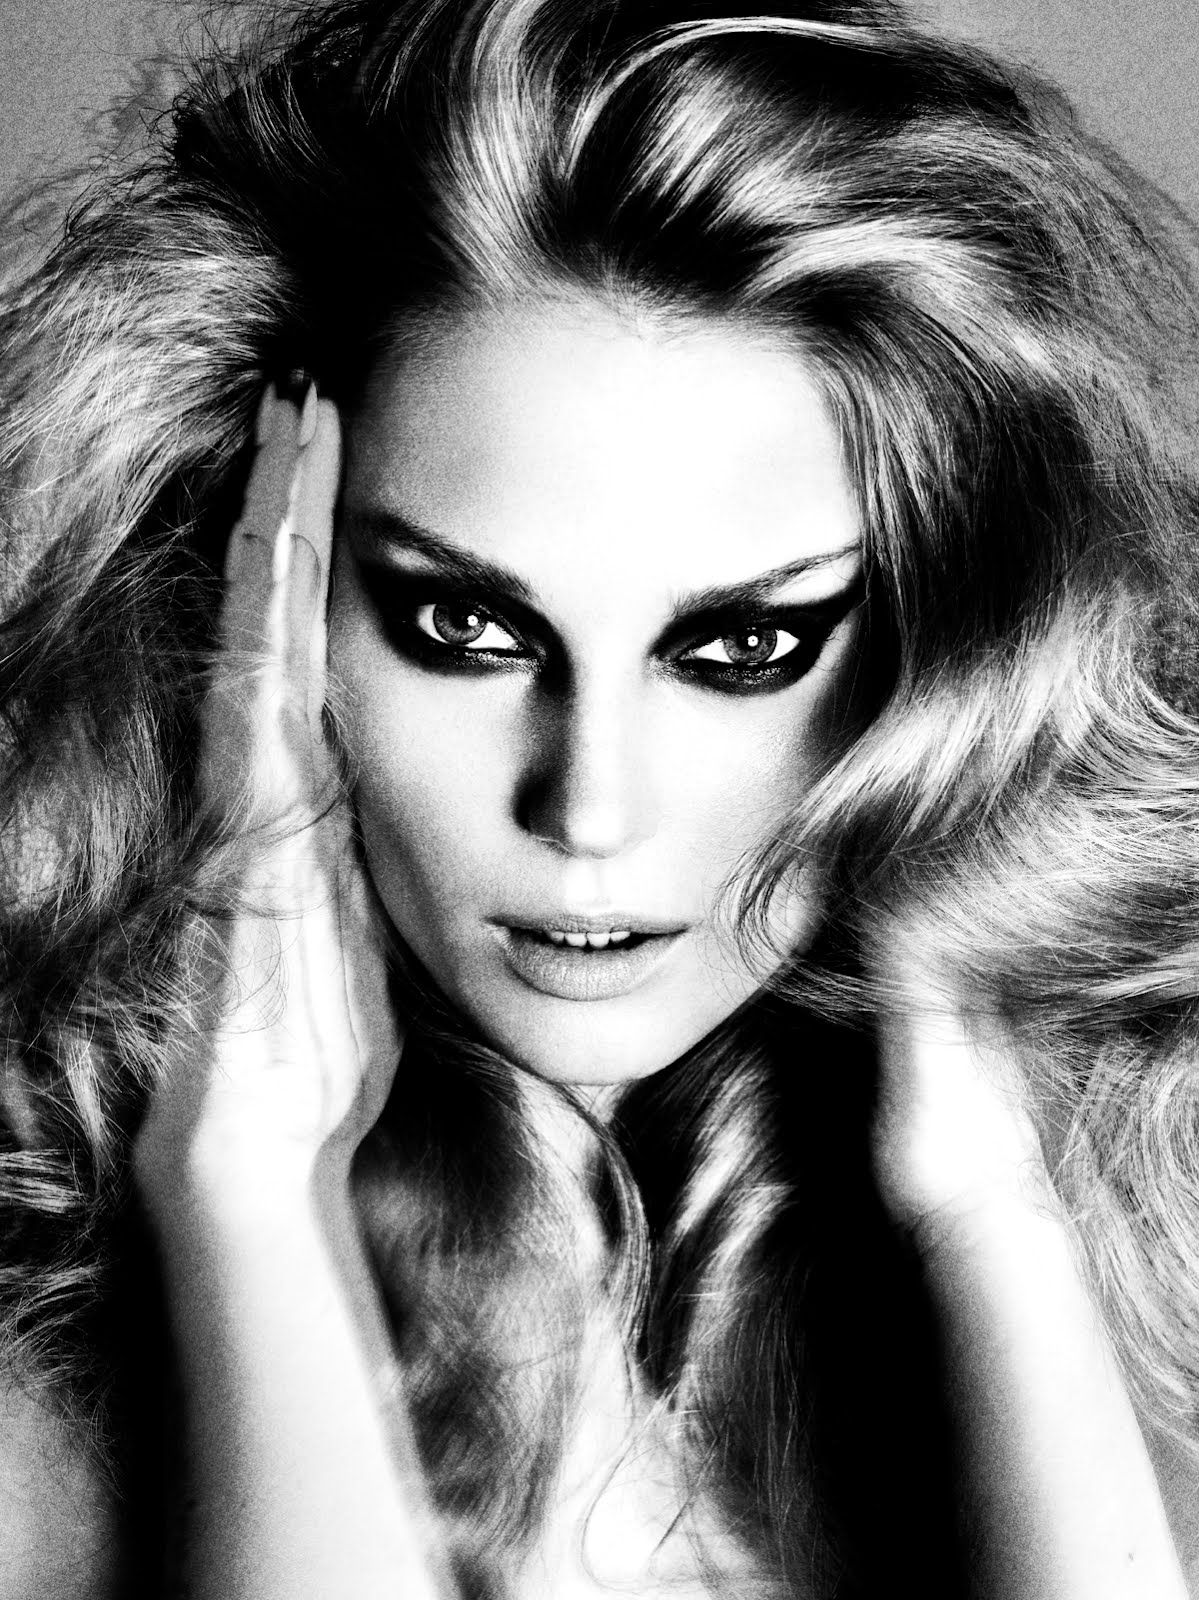 Just Hairitage by Mikael Schulz for Tush Magazine